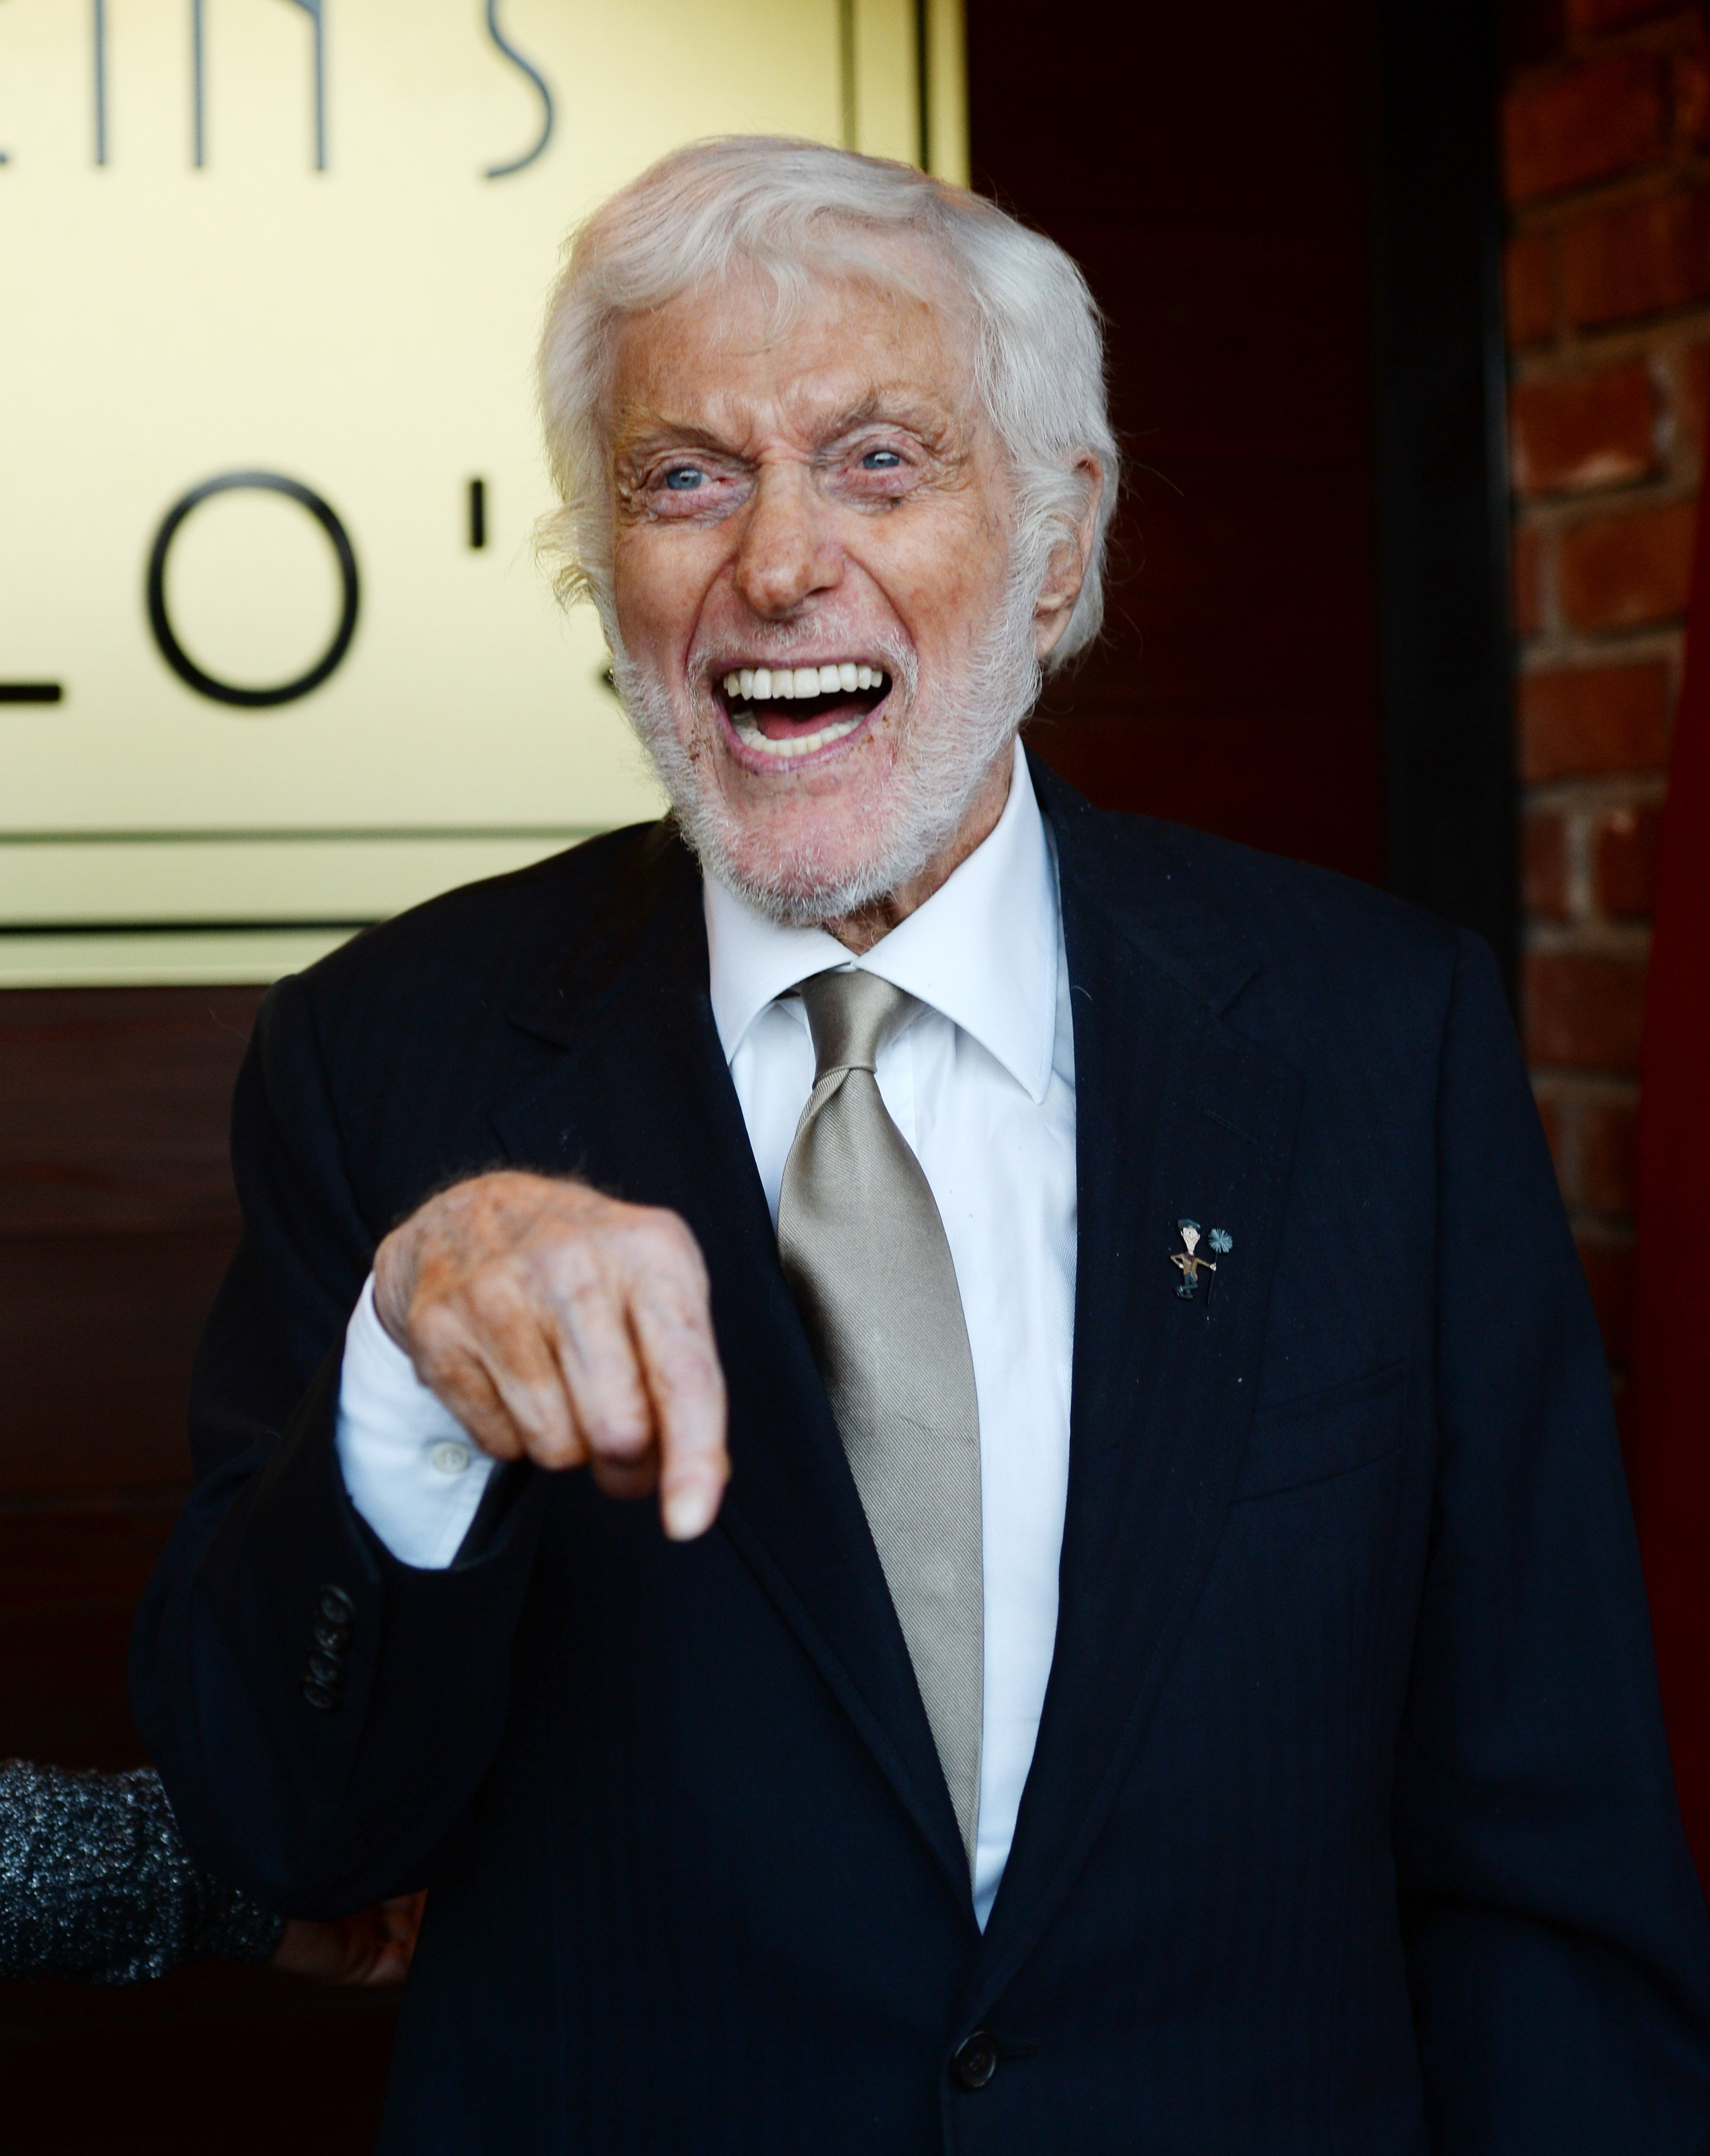 Dick Van Dyke arrives at the opening of Feinstein's supper club in Studio City, California on June 13, 2019 | Photo: Getty Images